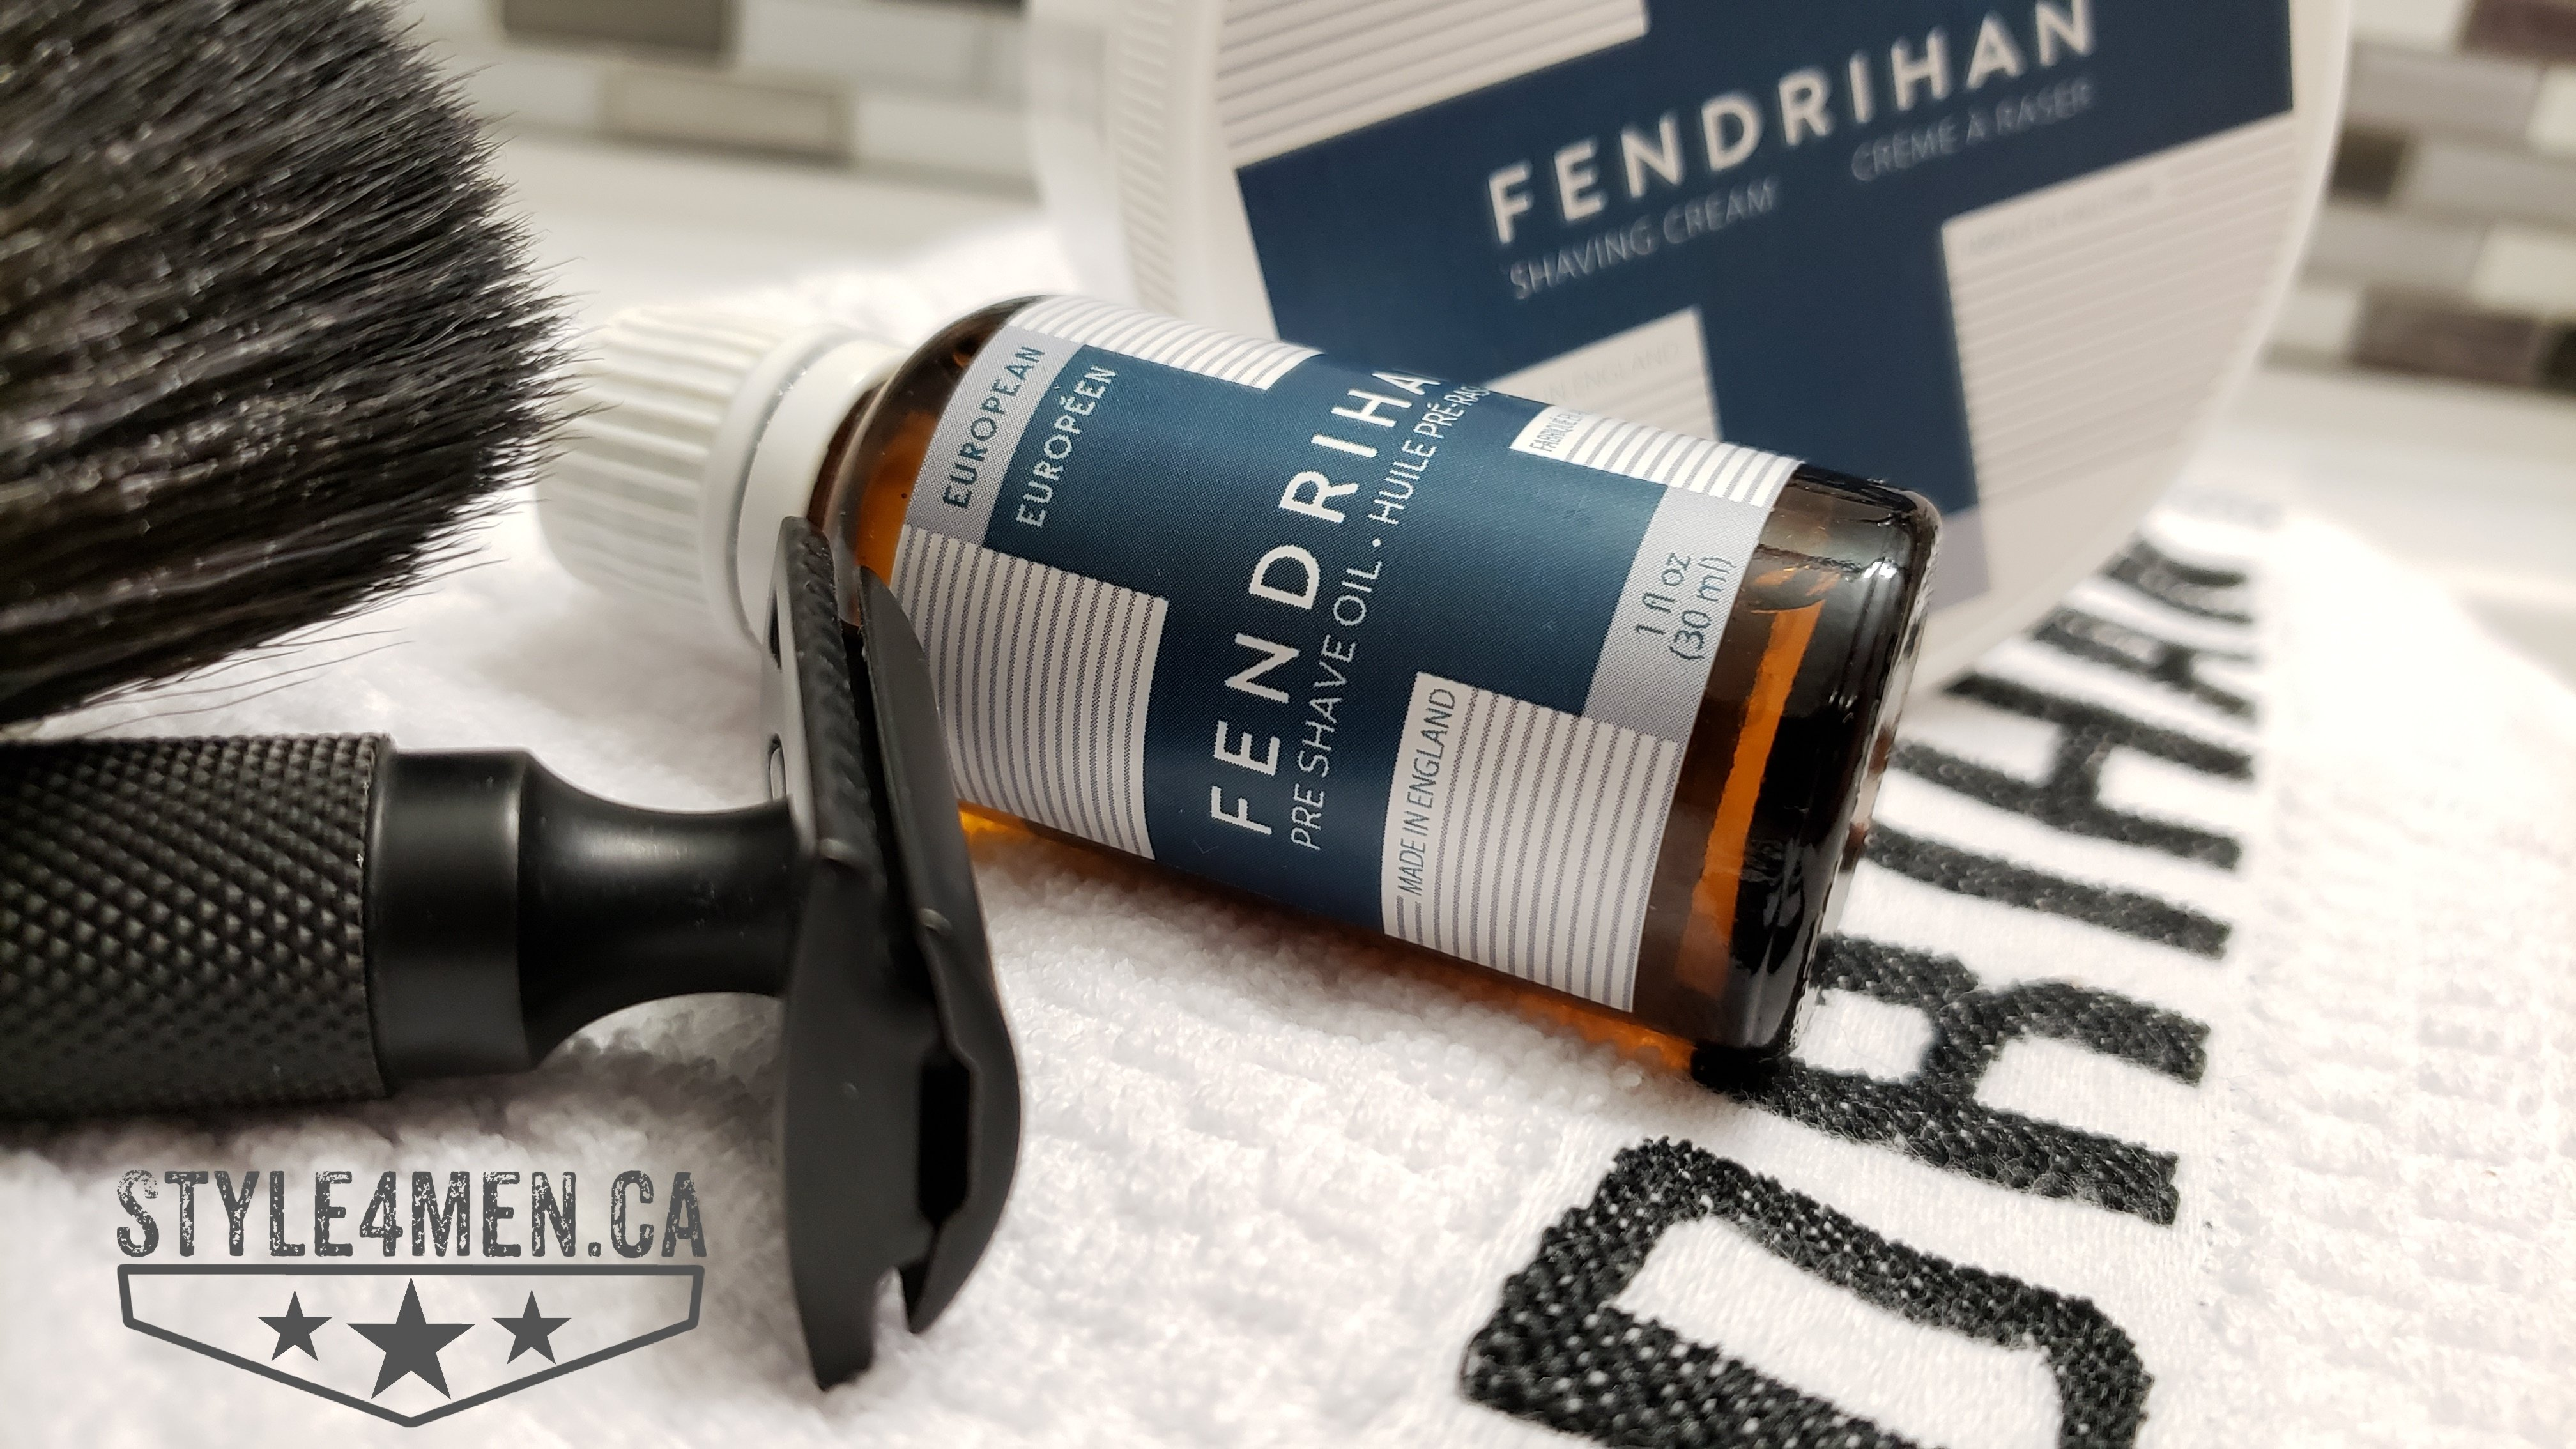 Unboxing FENDRIHAN pre-shave oils and shave creams